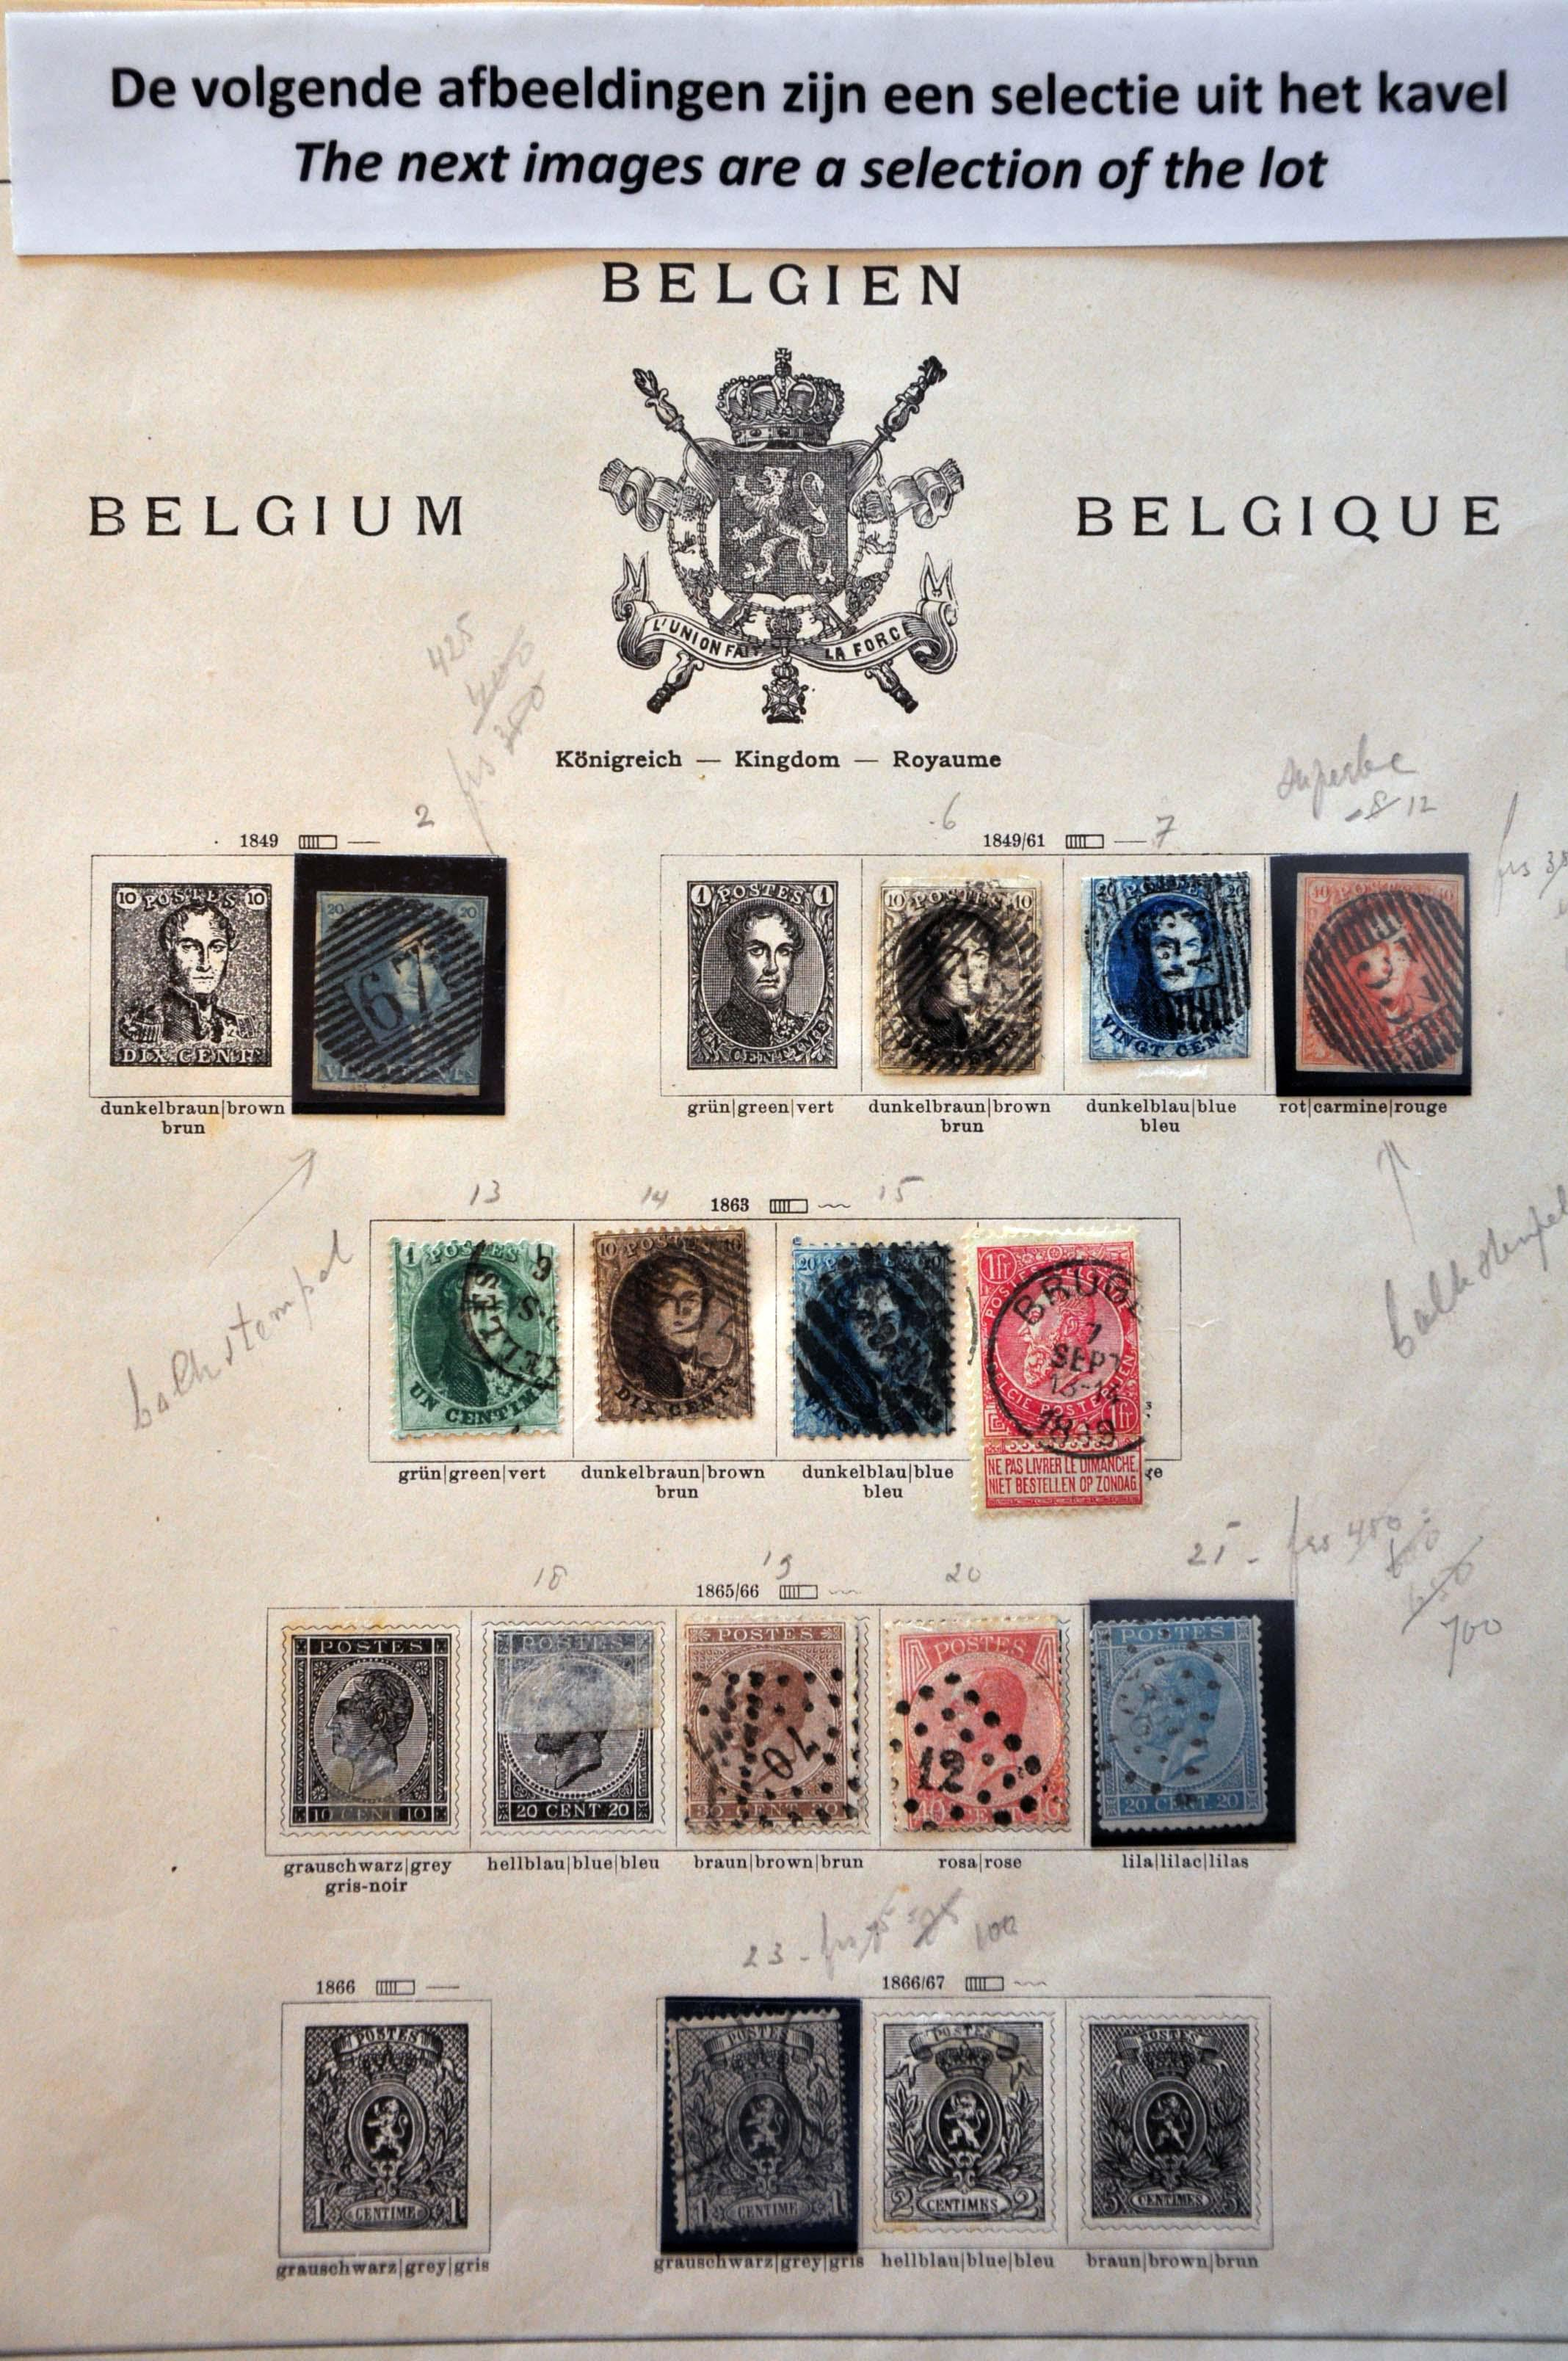 Lot 593 - Belgium and former colonies Belgium -  Corinphila Veilingen Auction 245-246 Day 2 - Foreign countries - Collections and lots, Foreign countries - Boxes and literature